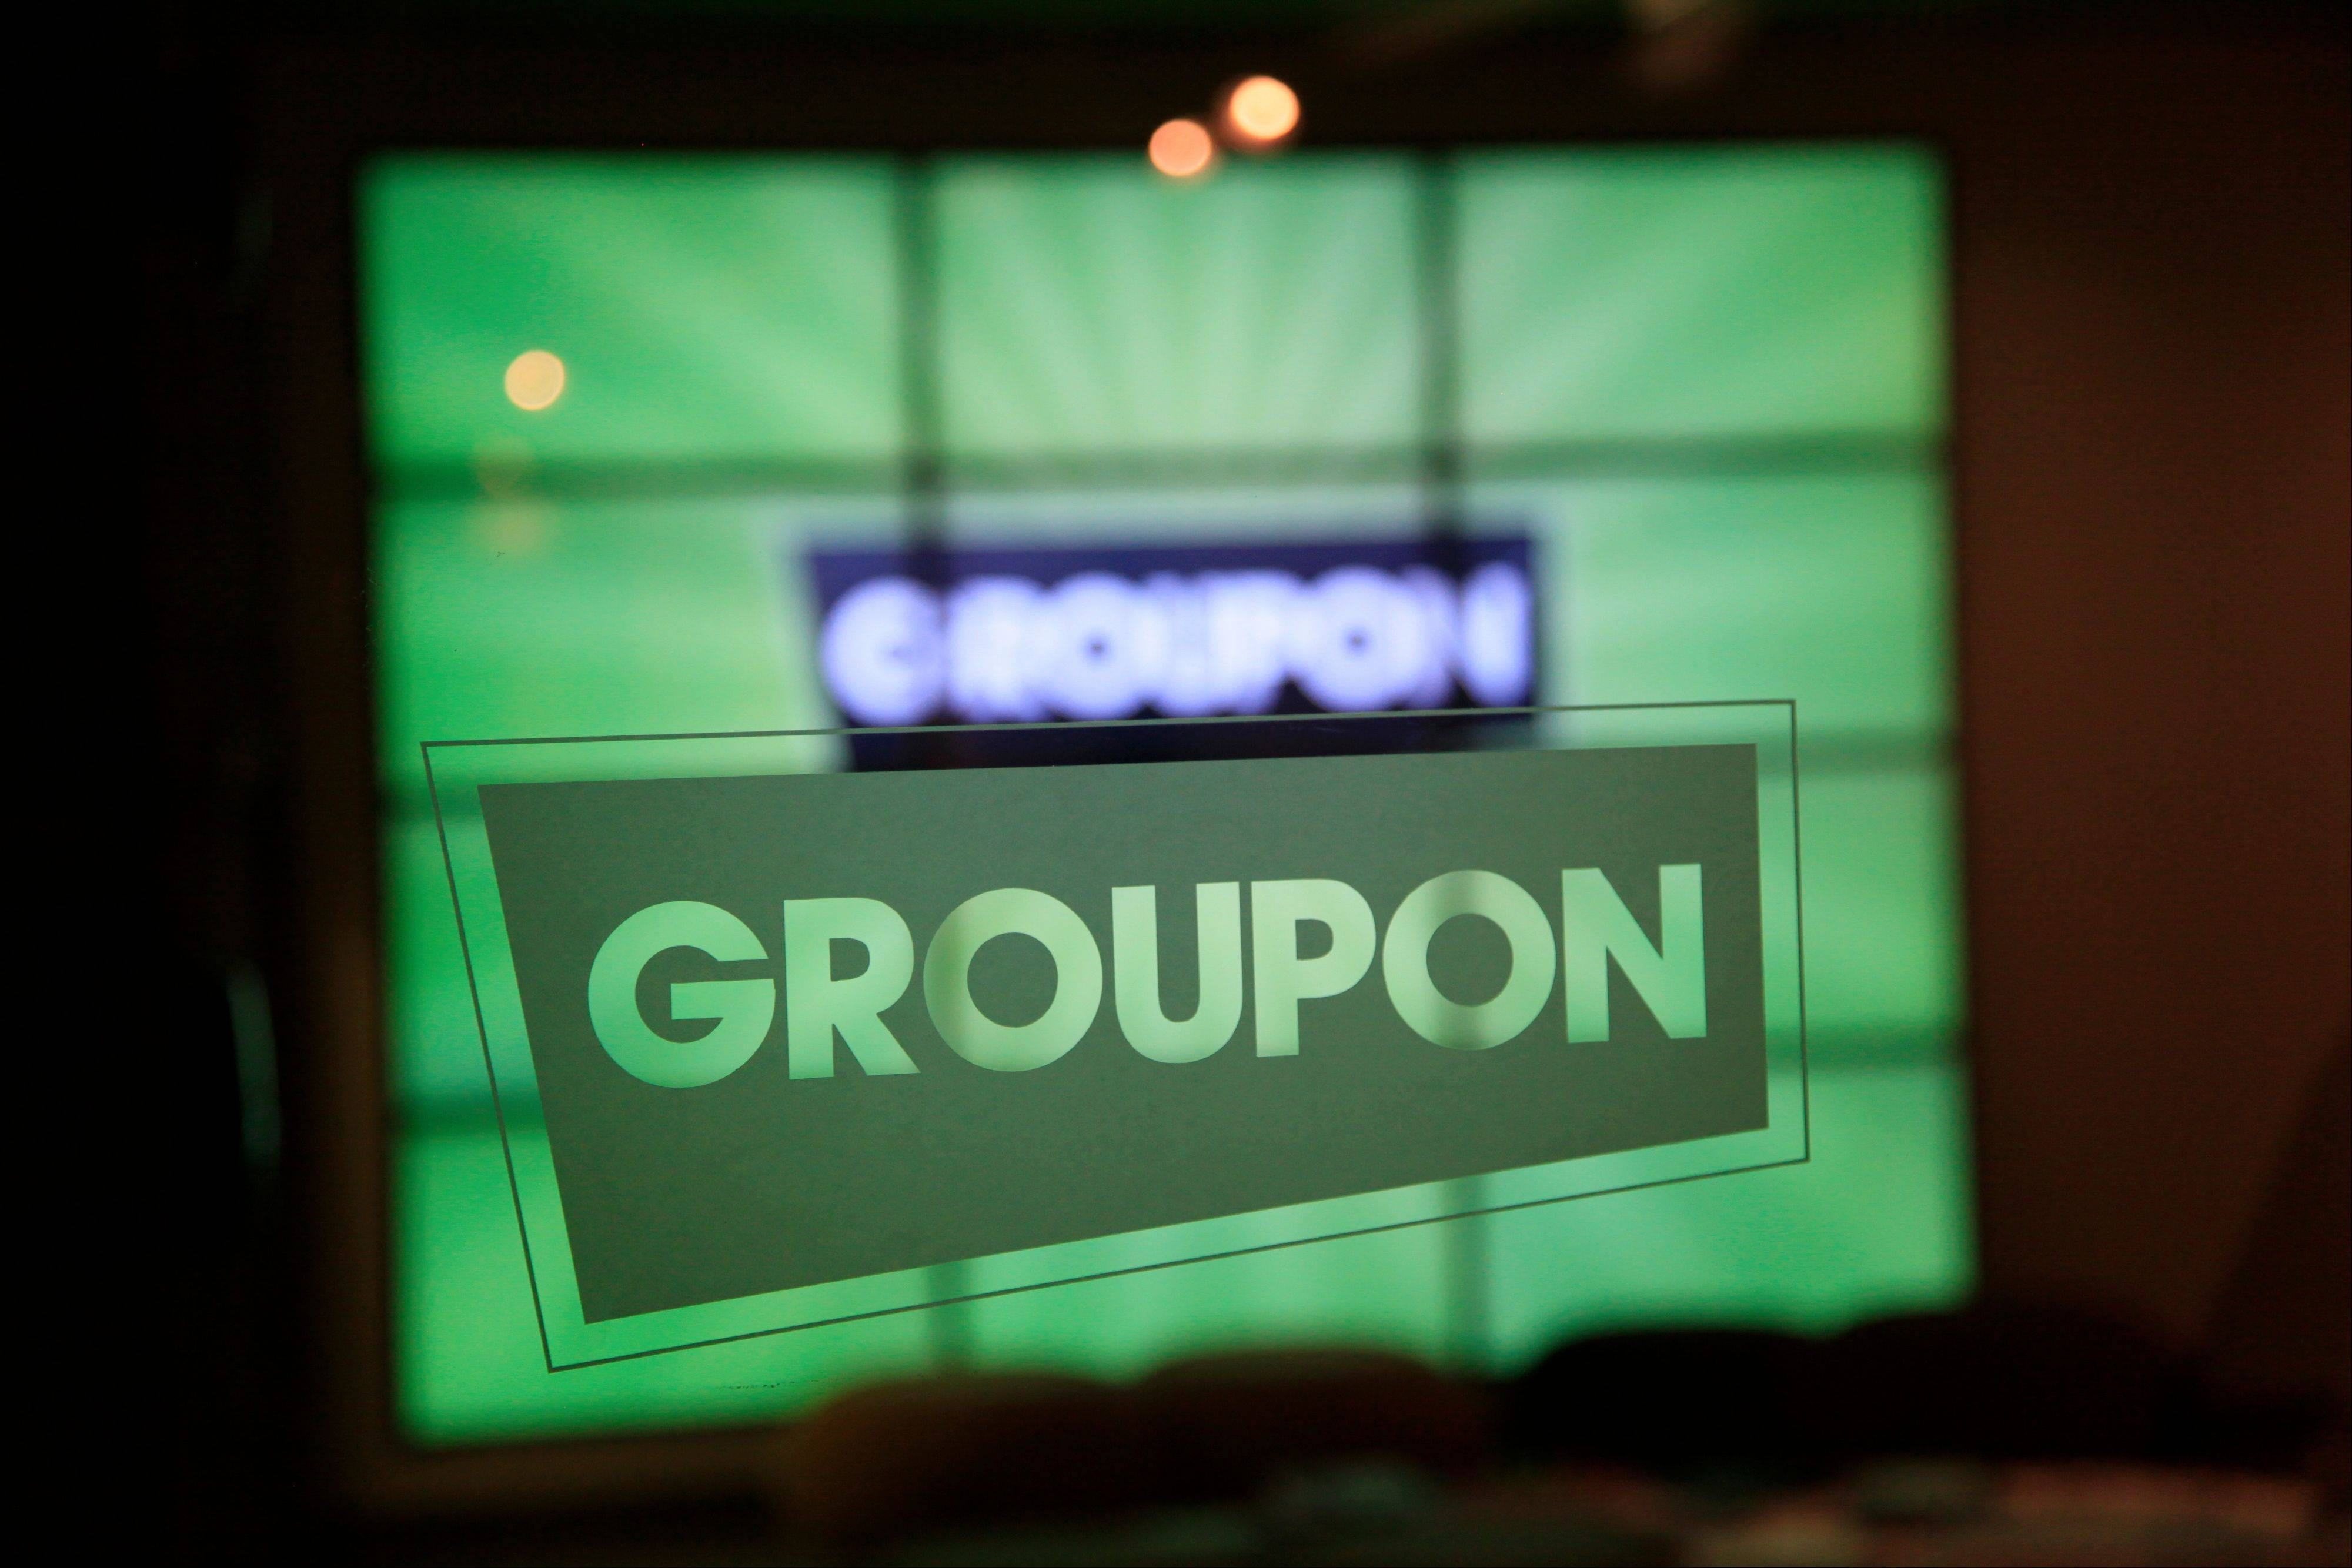 Chicago-based Groupon Inc. said it will disclose more detail about its financial performance after the U.S. Securities and Exchange Commission asked the largest daily-deal website to revise some of its accounting practices.